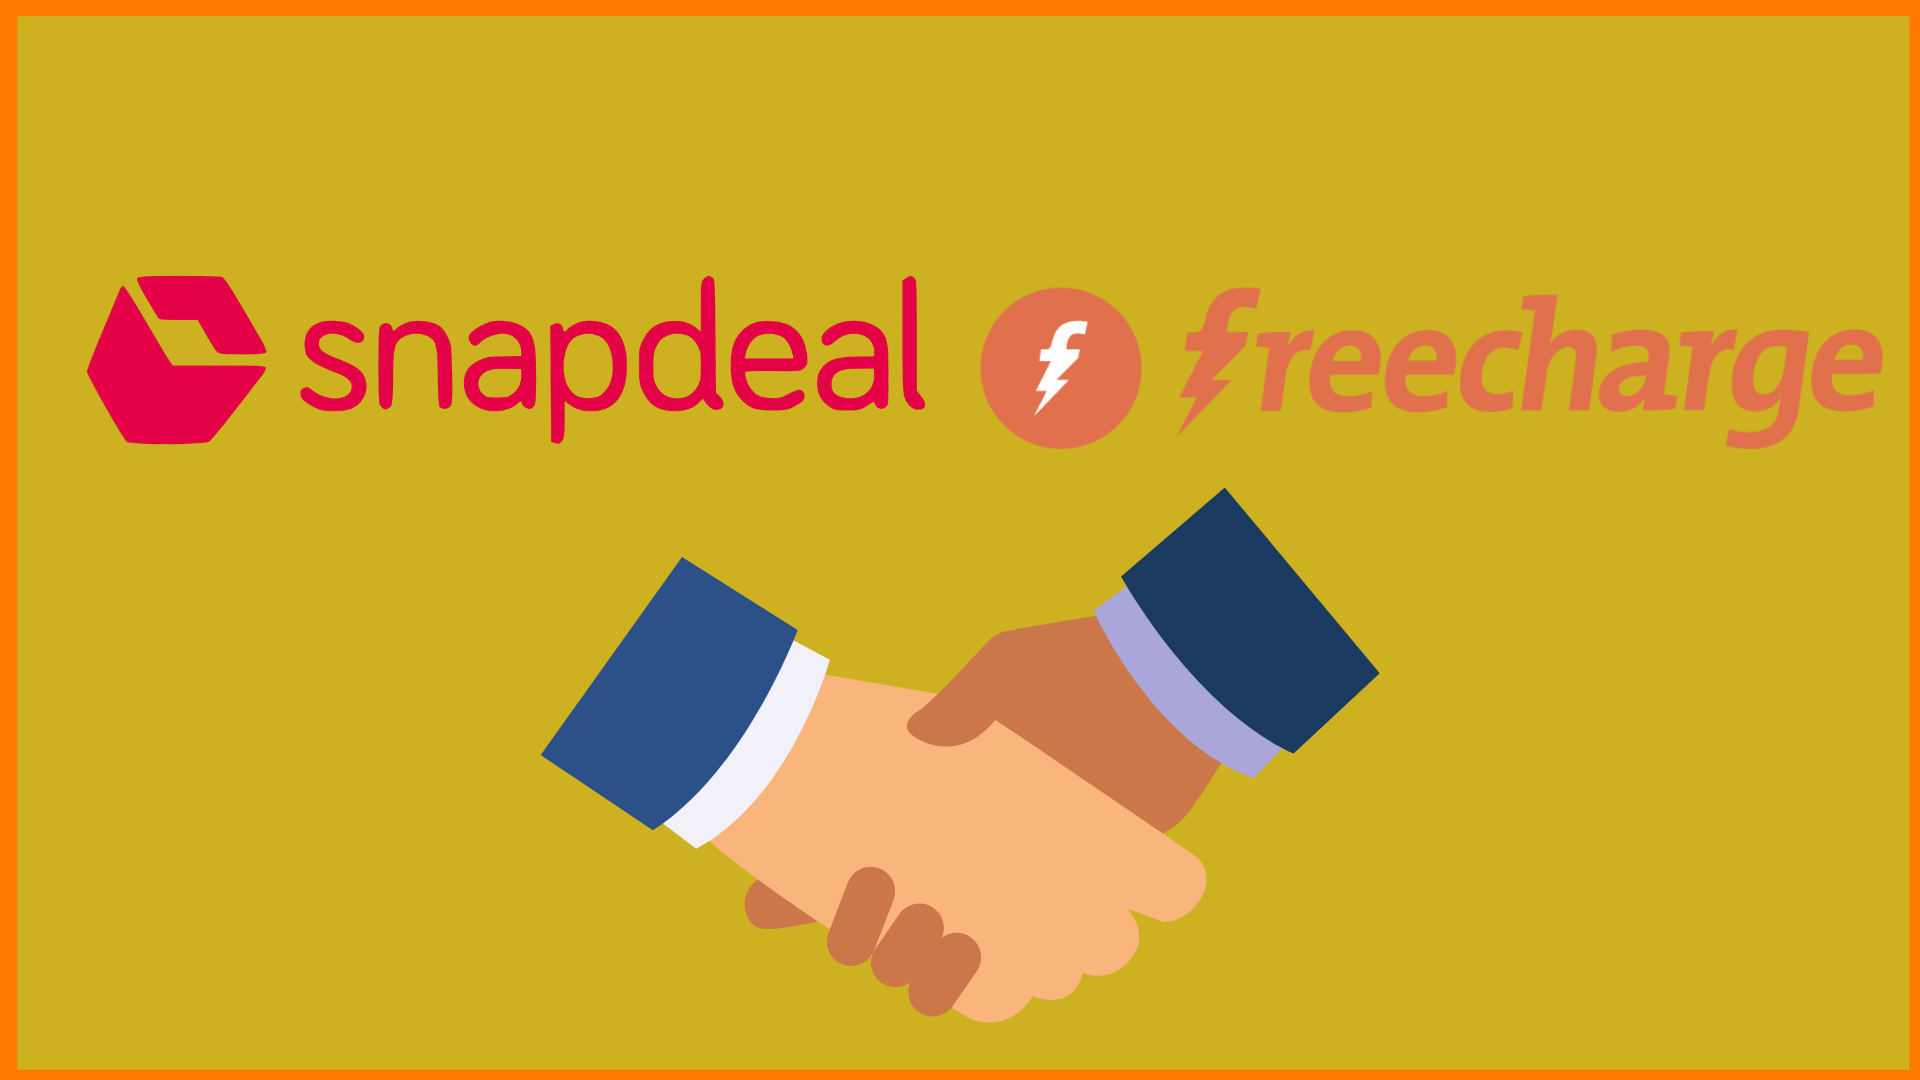 Snapdeal and FreeCharge Logo